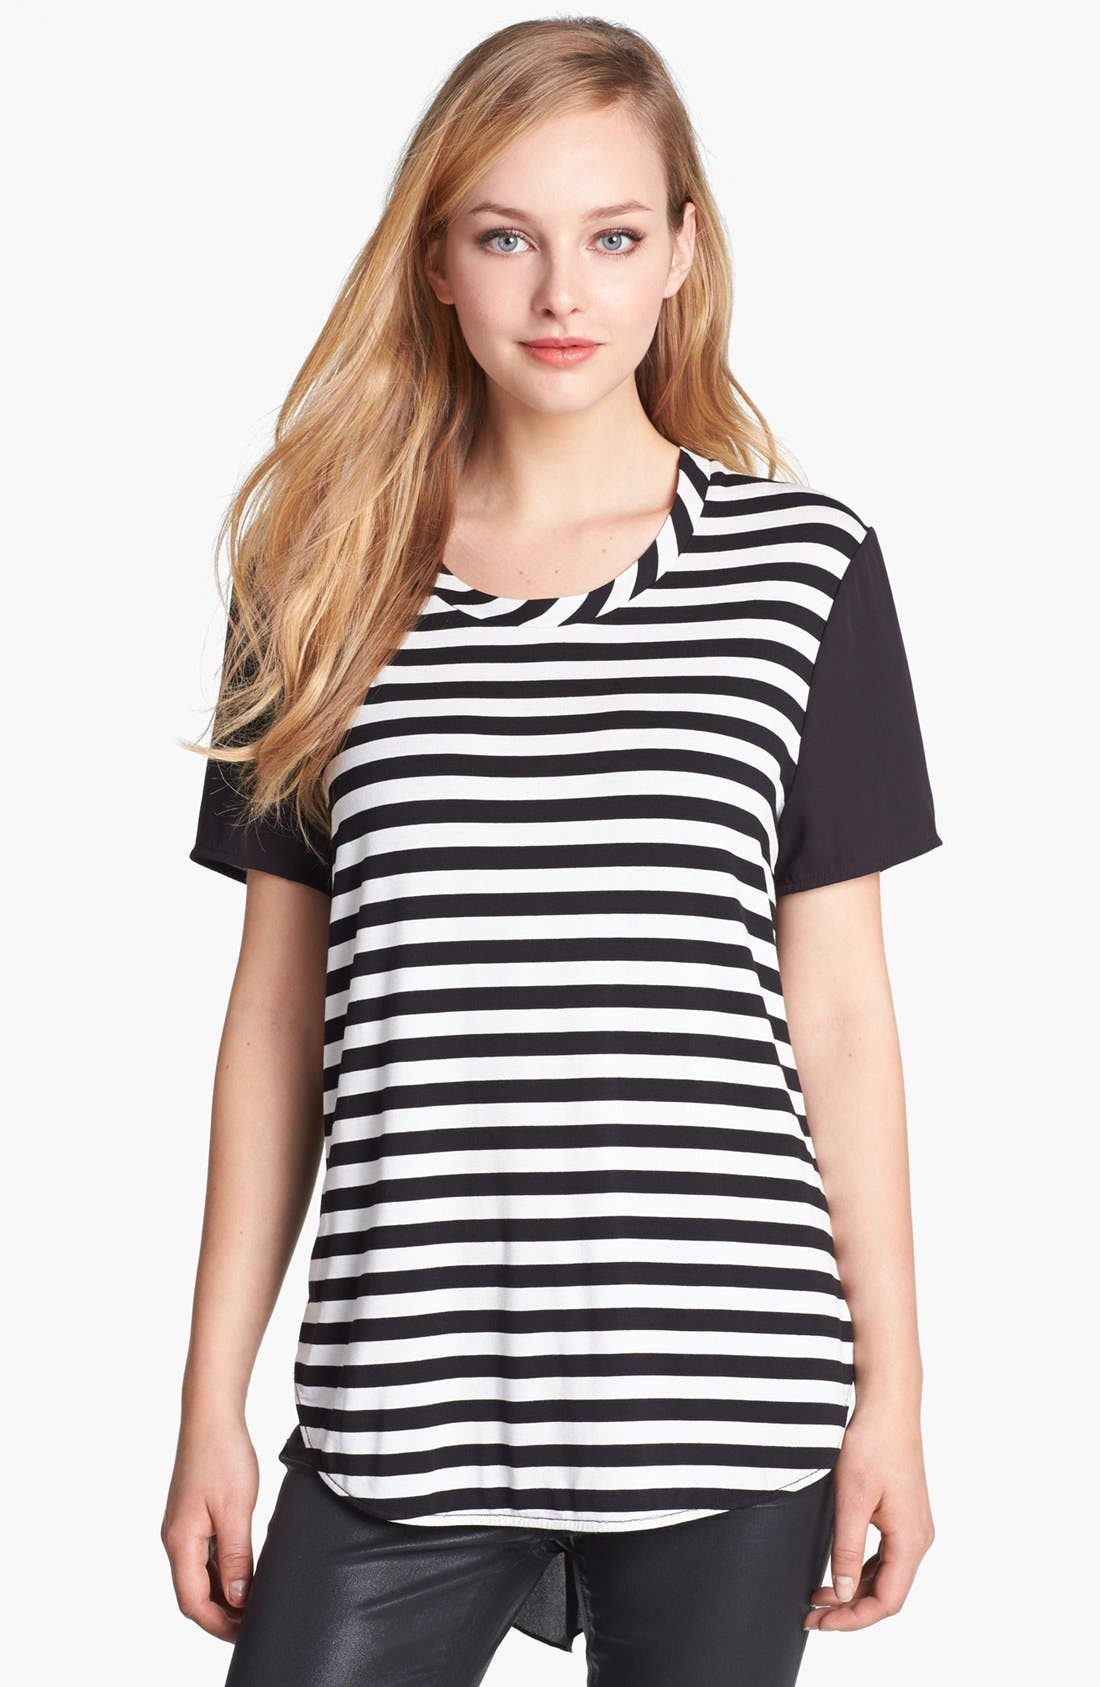 Alternate Image 1 Selected - Vince Camuto Stripe Front Mixed Media Tee